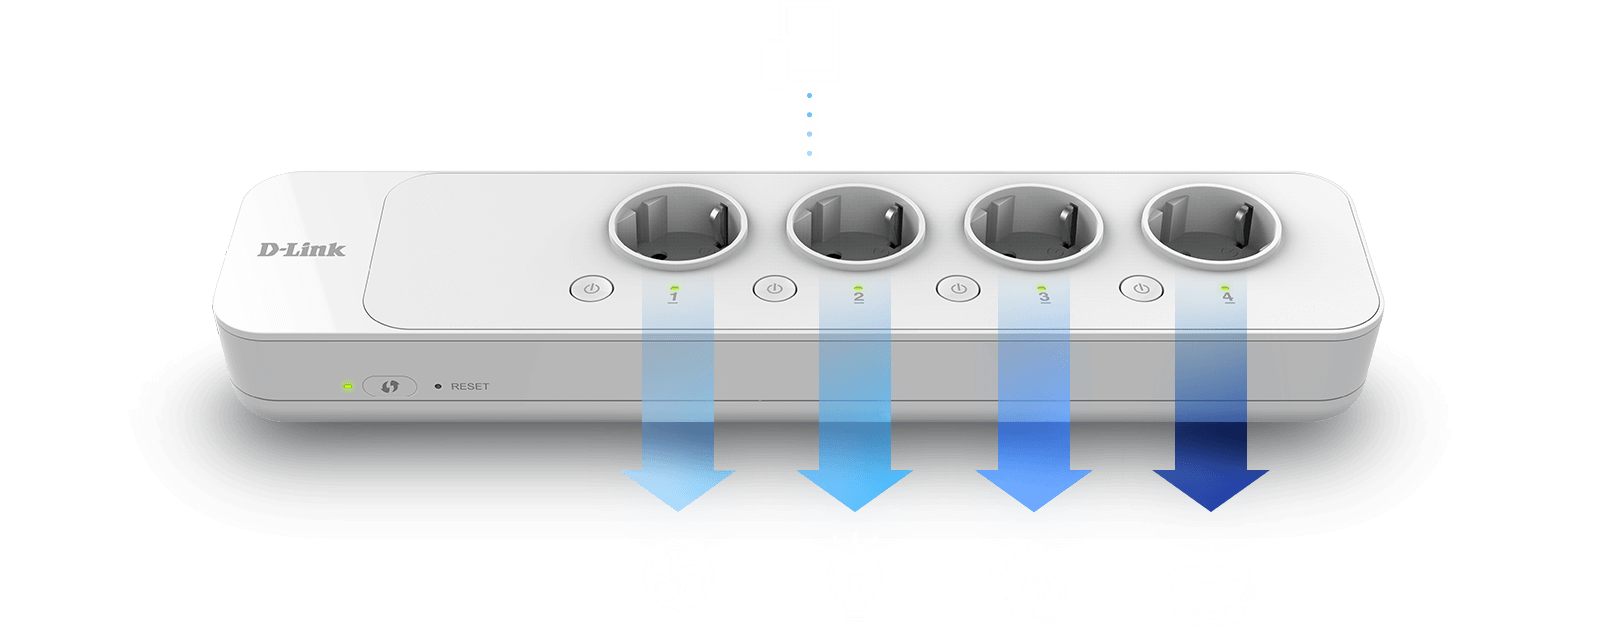 Control 4 power sockets from your phone